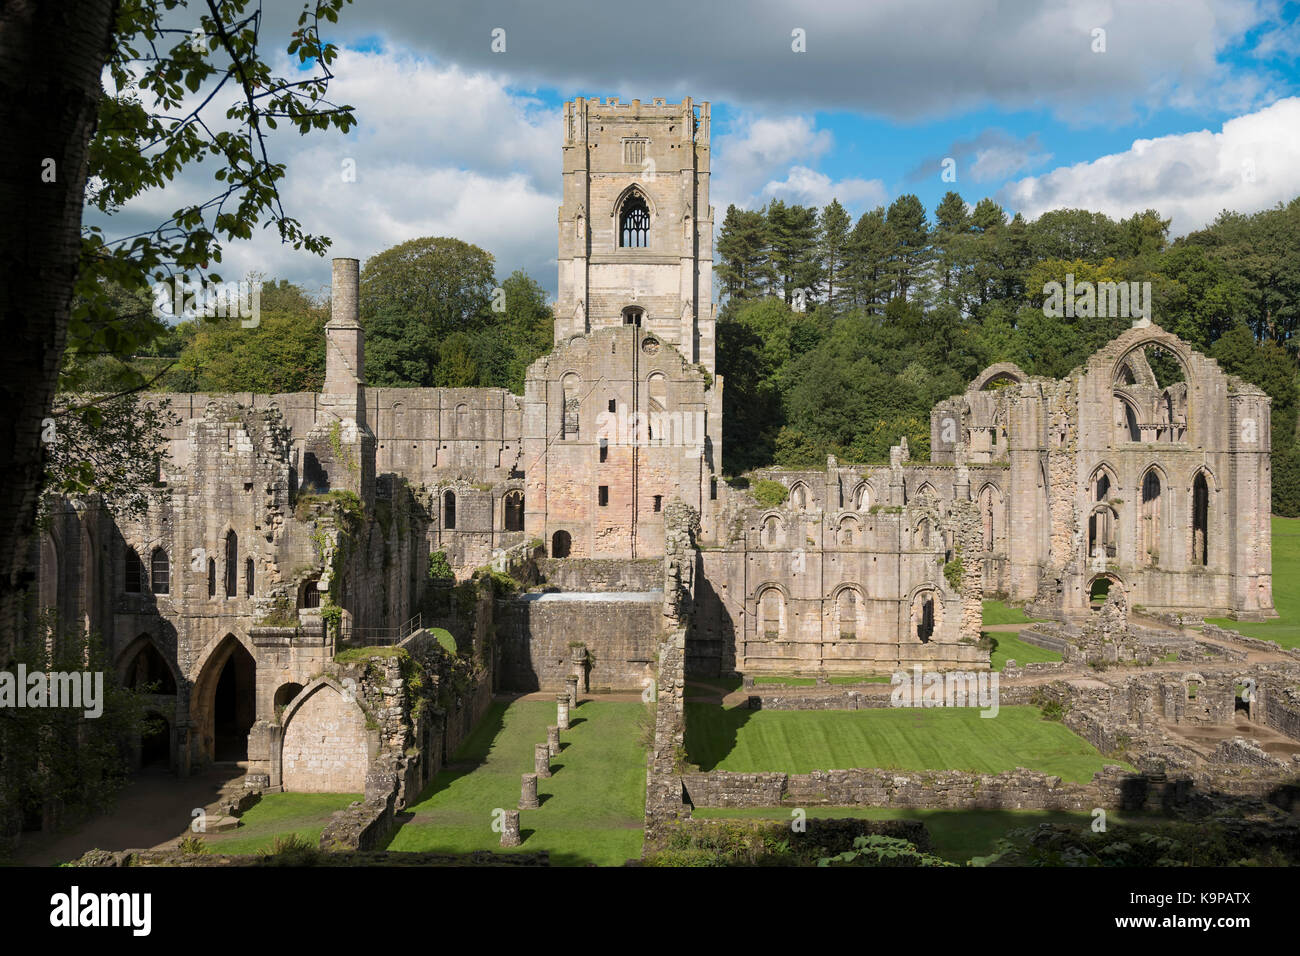 L'abbaye de Fountains, Yorkshire, UK. Photo Stock